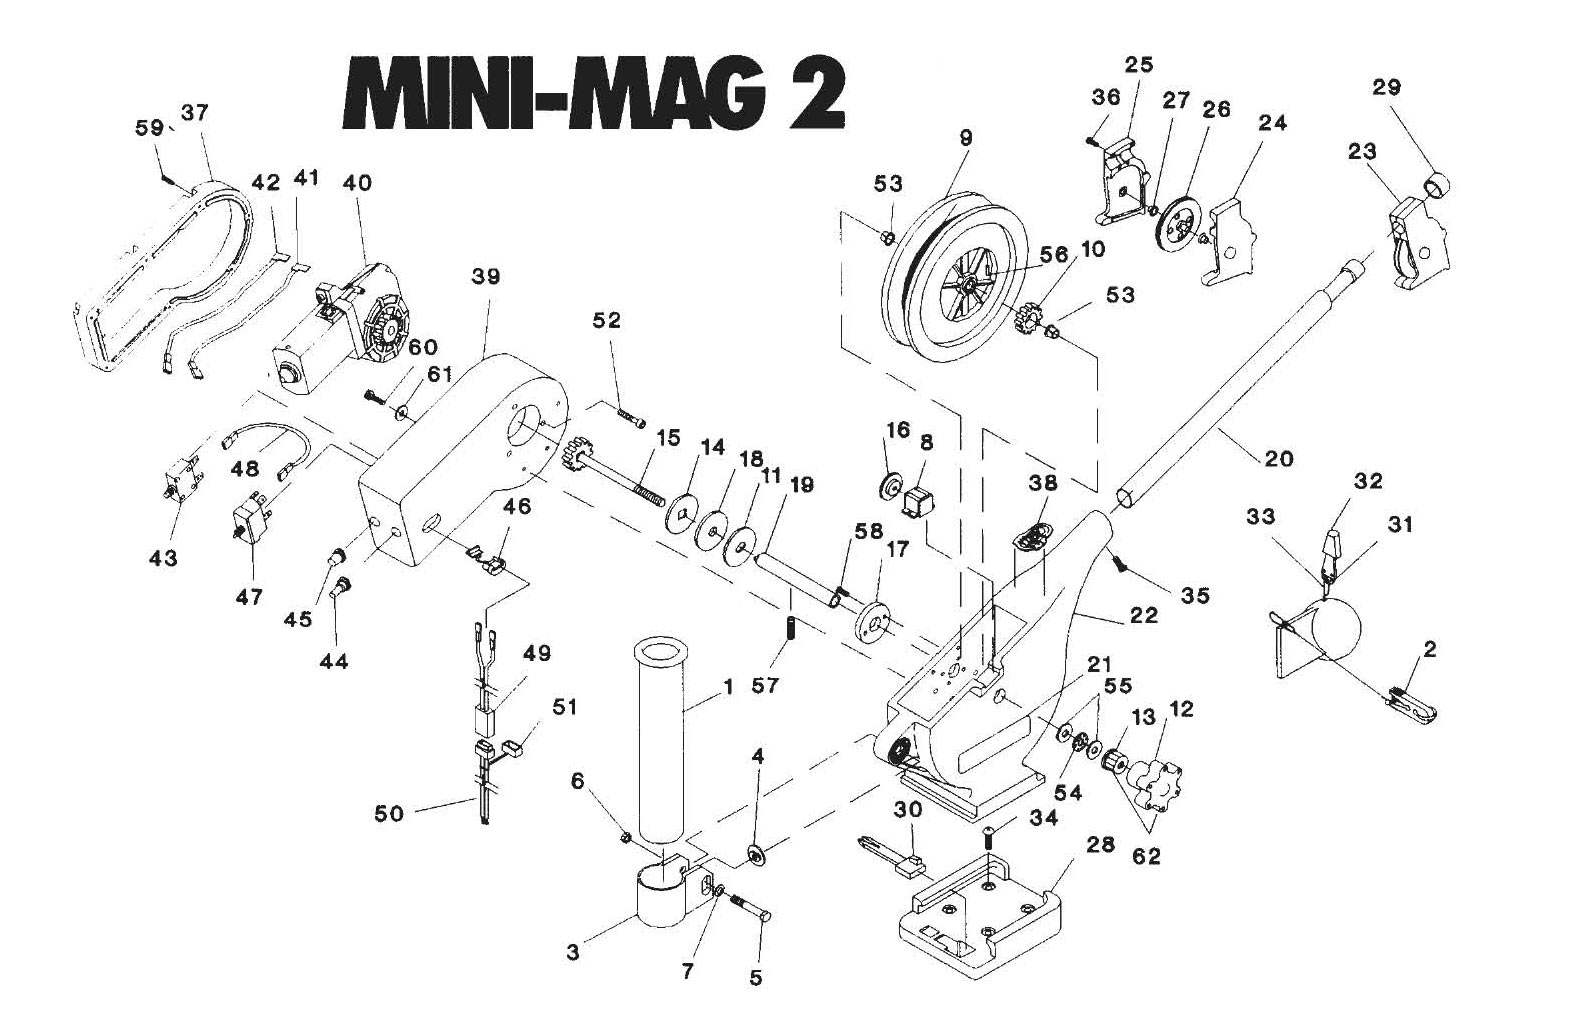 Cannon_Mini_Mag order cannon mini mag 2 electric downrigger parts from fish307 com scotty downrigger wiring diagram at metegol.co